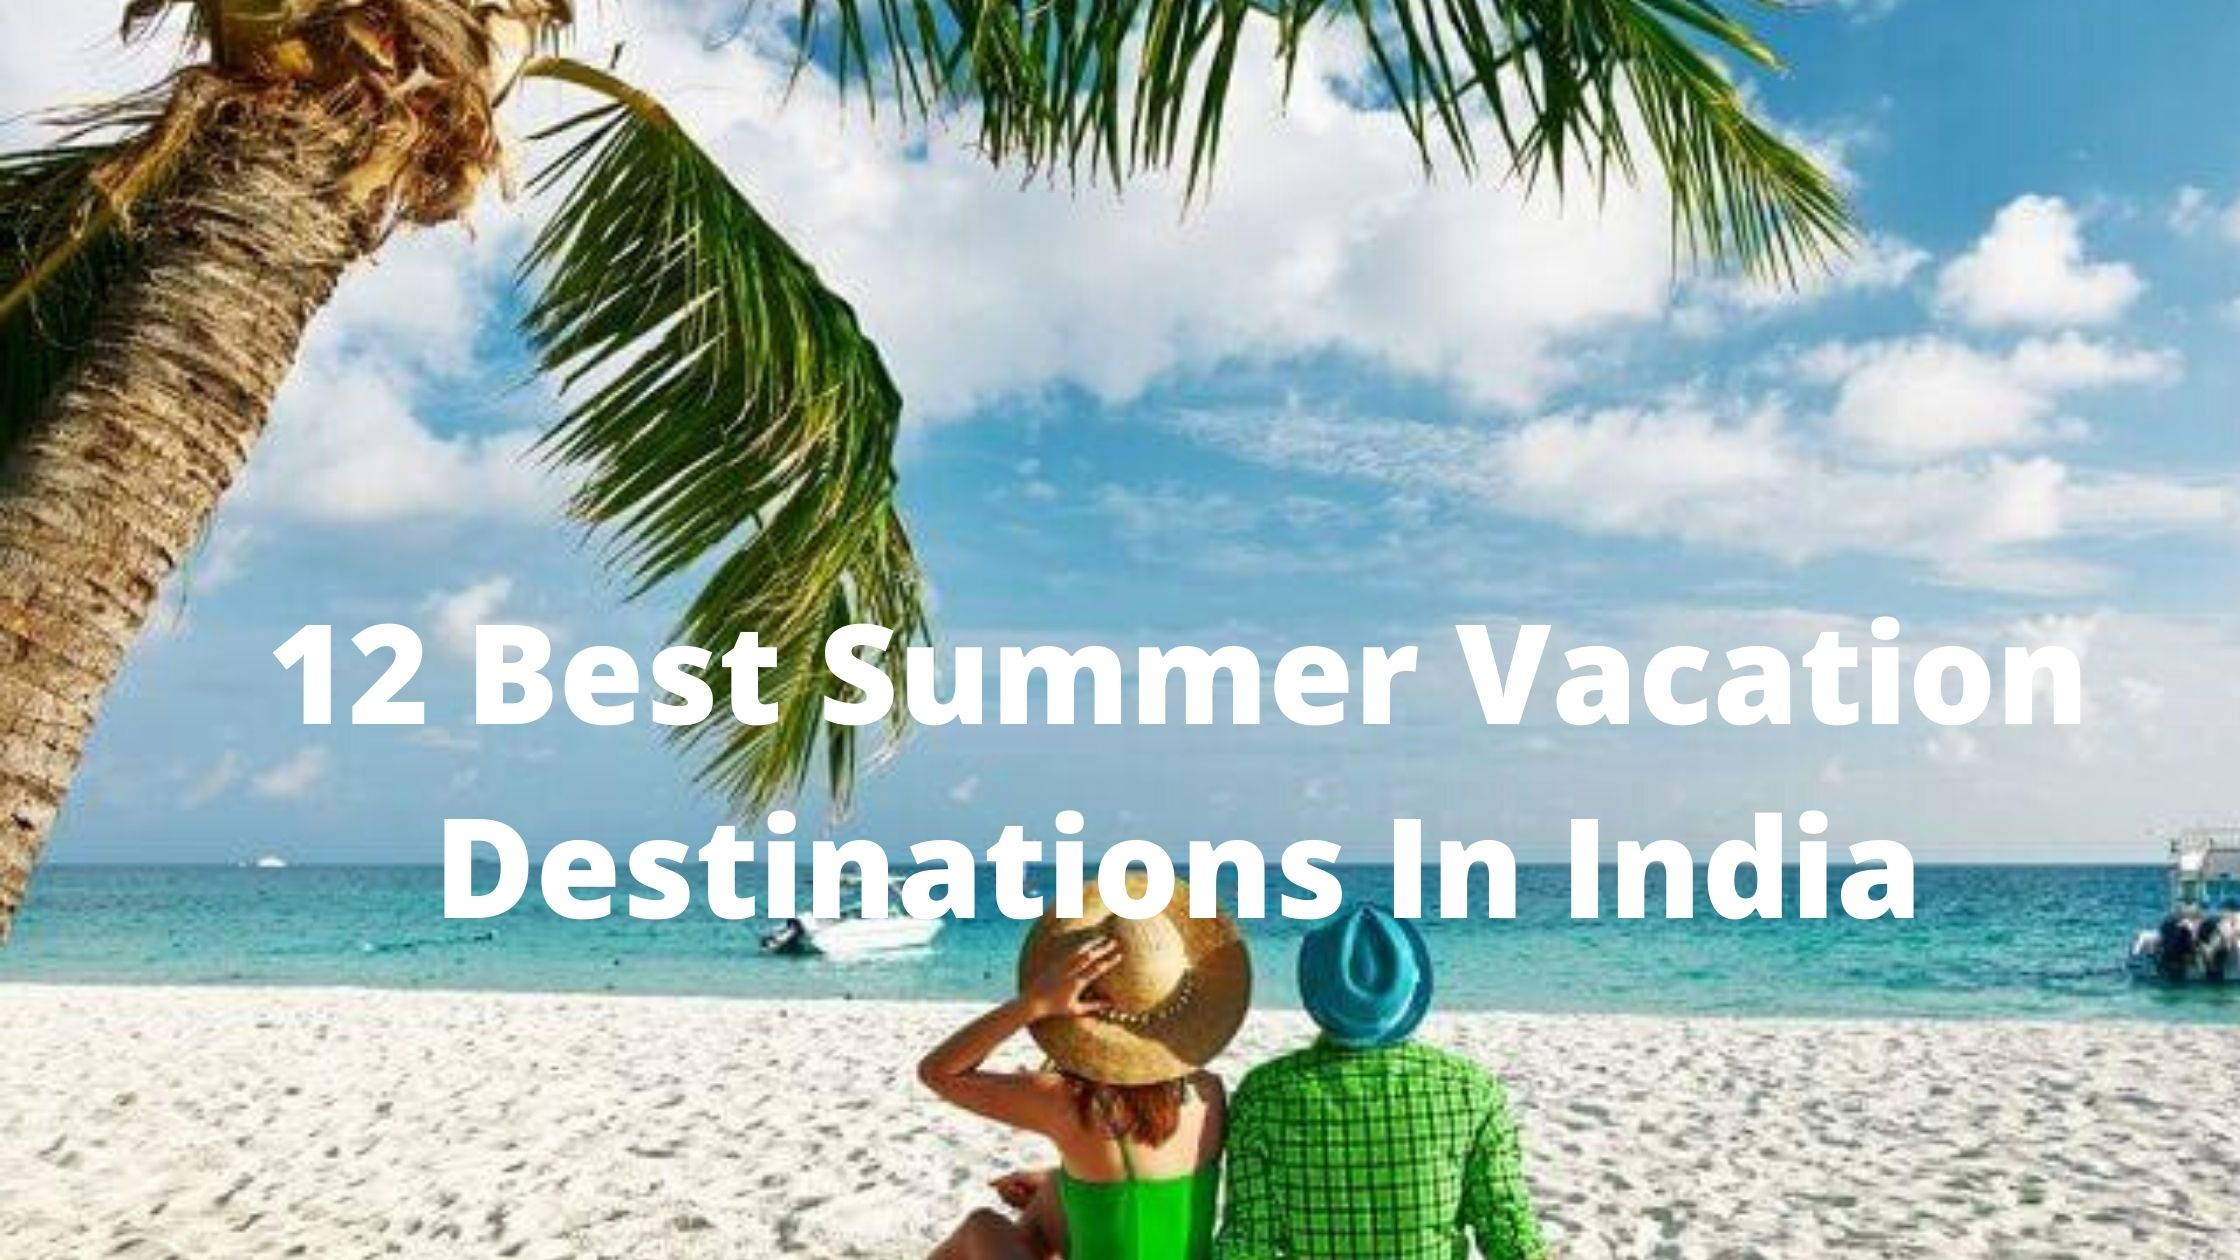 12 Best Summer Vacation Destinations in India